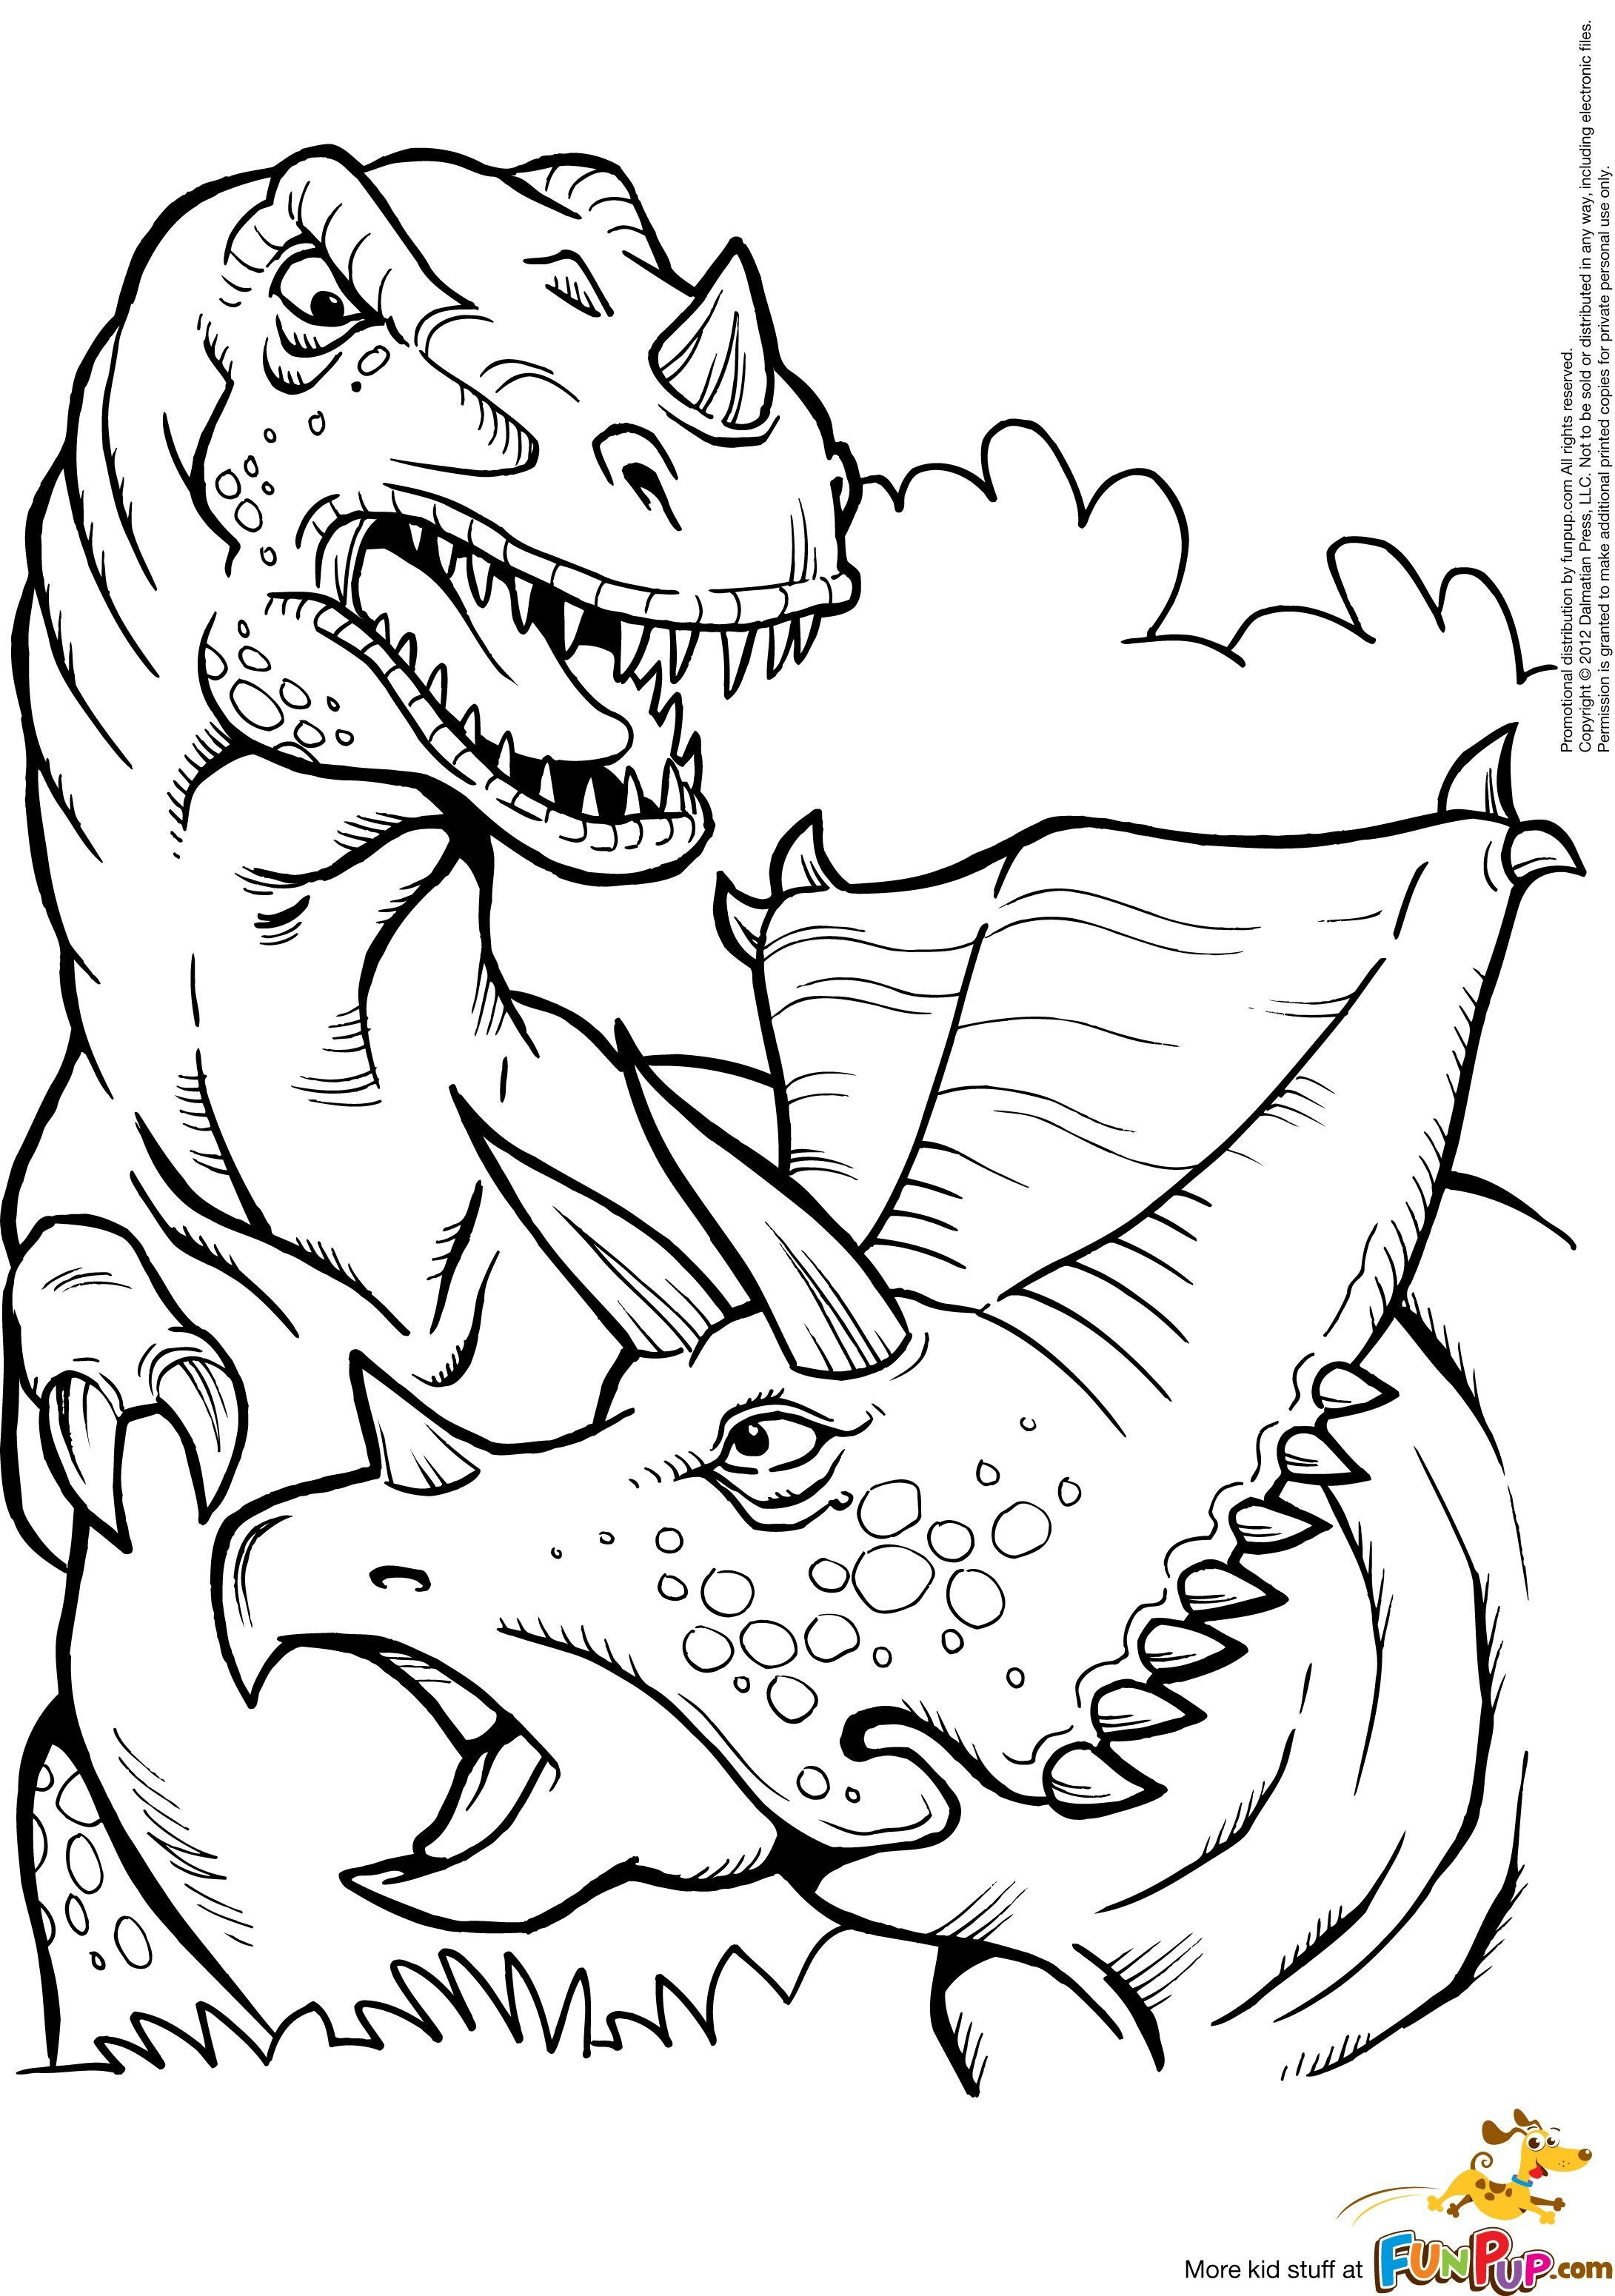 Kleurplaat Printable T Rex And Triceratops Coloring Page Best Of Dinosaur Coloring Pages Dinosaur Coloring Sheets Dinosaur Coloring